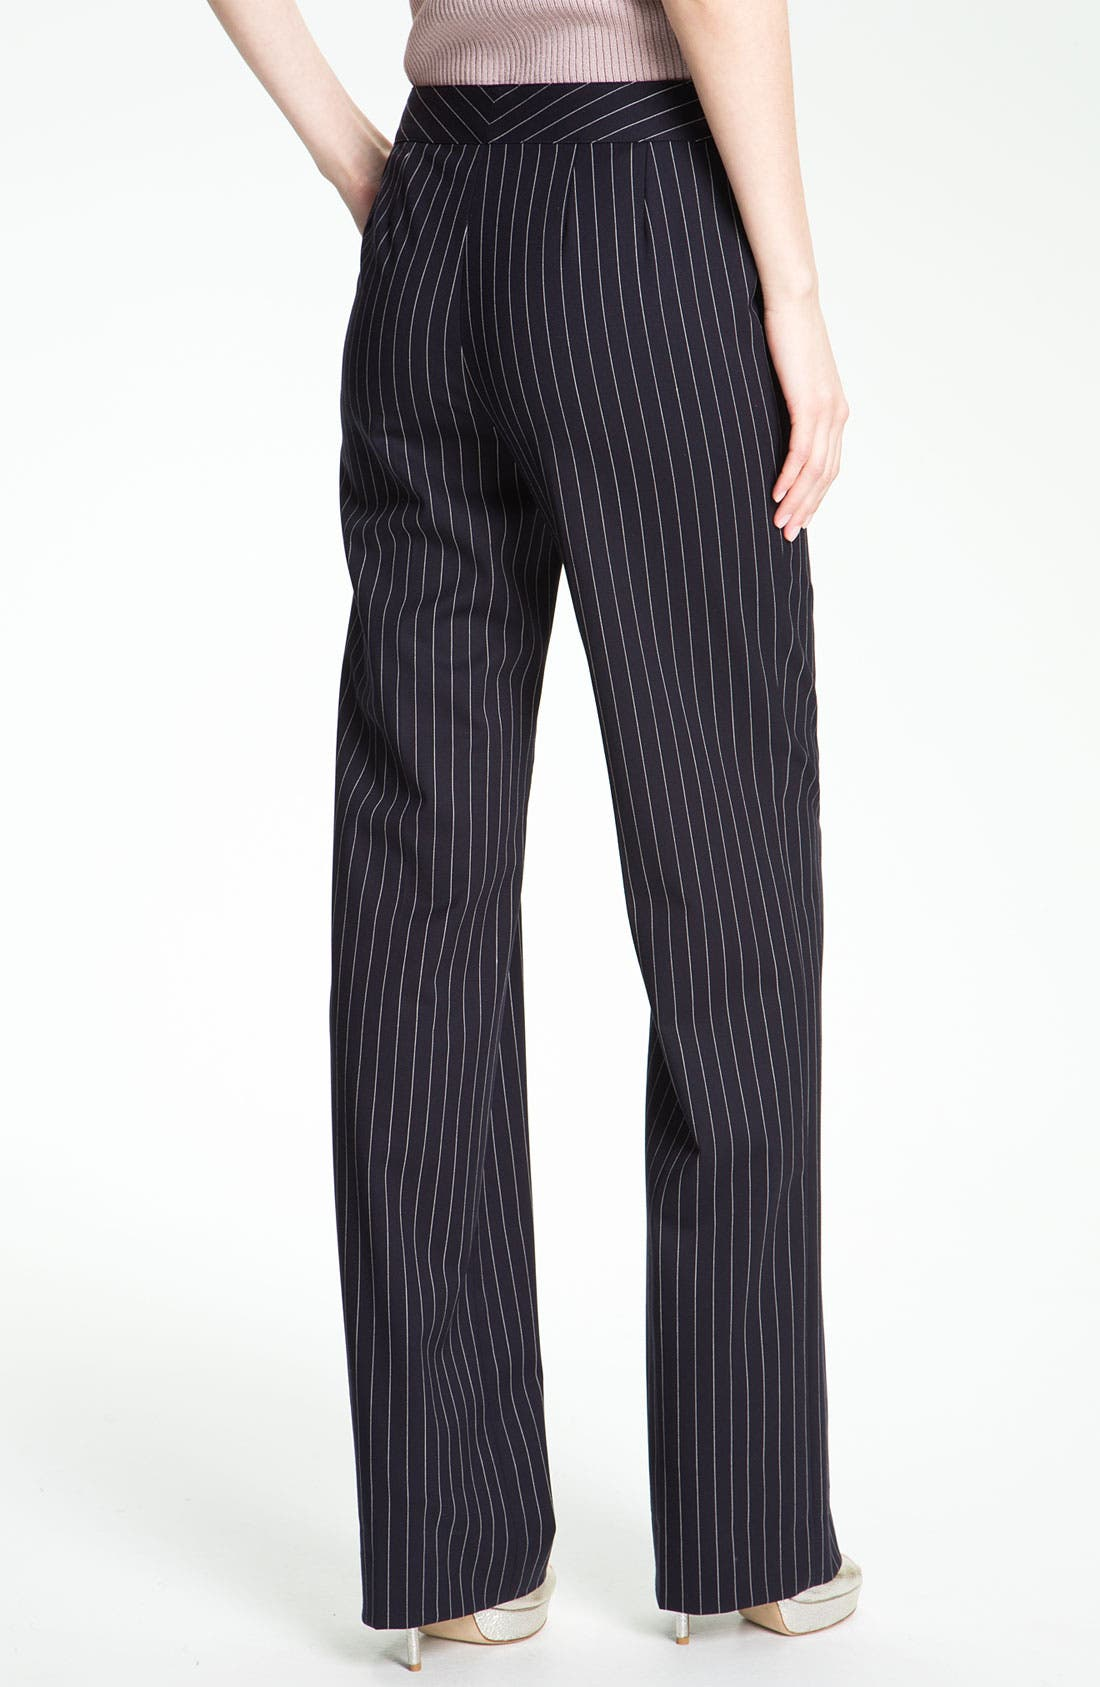 Alternate Image 3  - St. John Collection 'Shelley' Pinstripe Flare Leg Pants